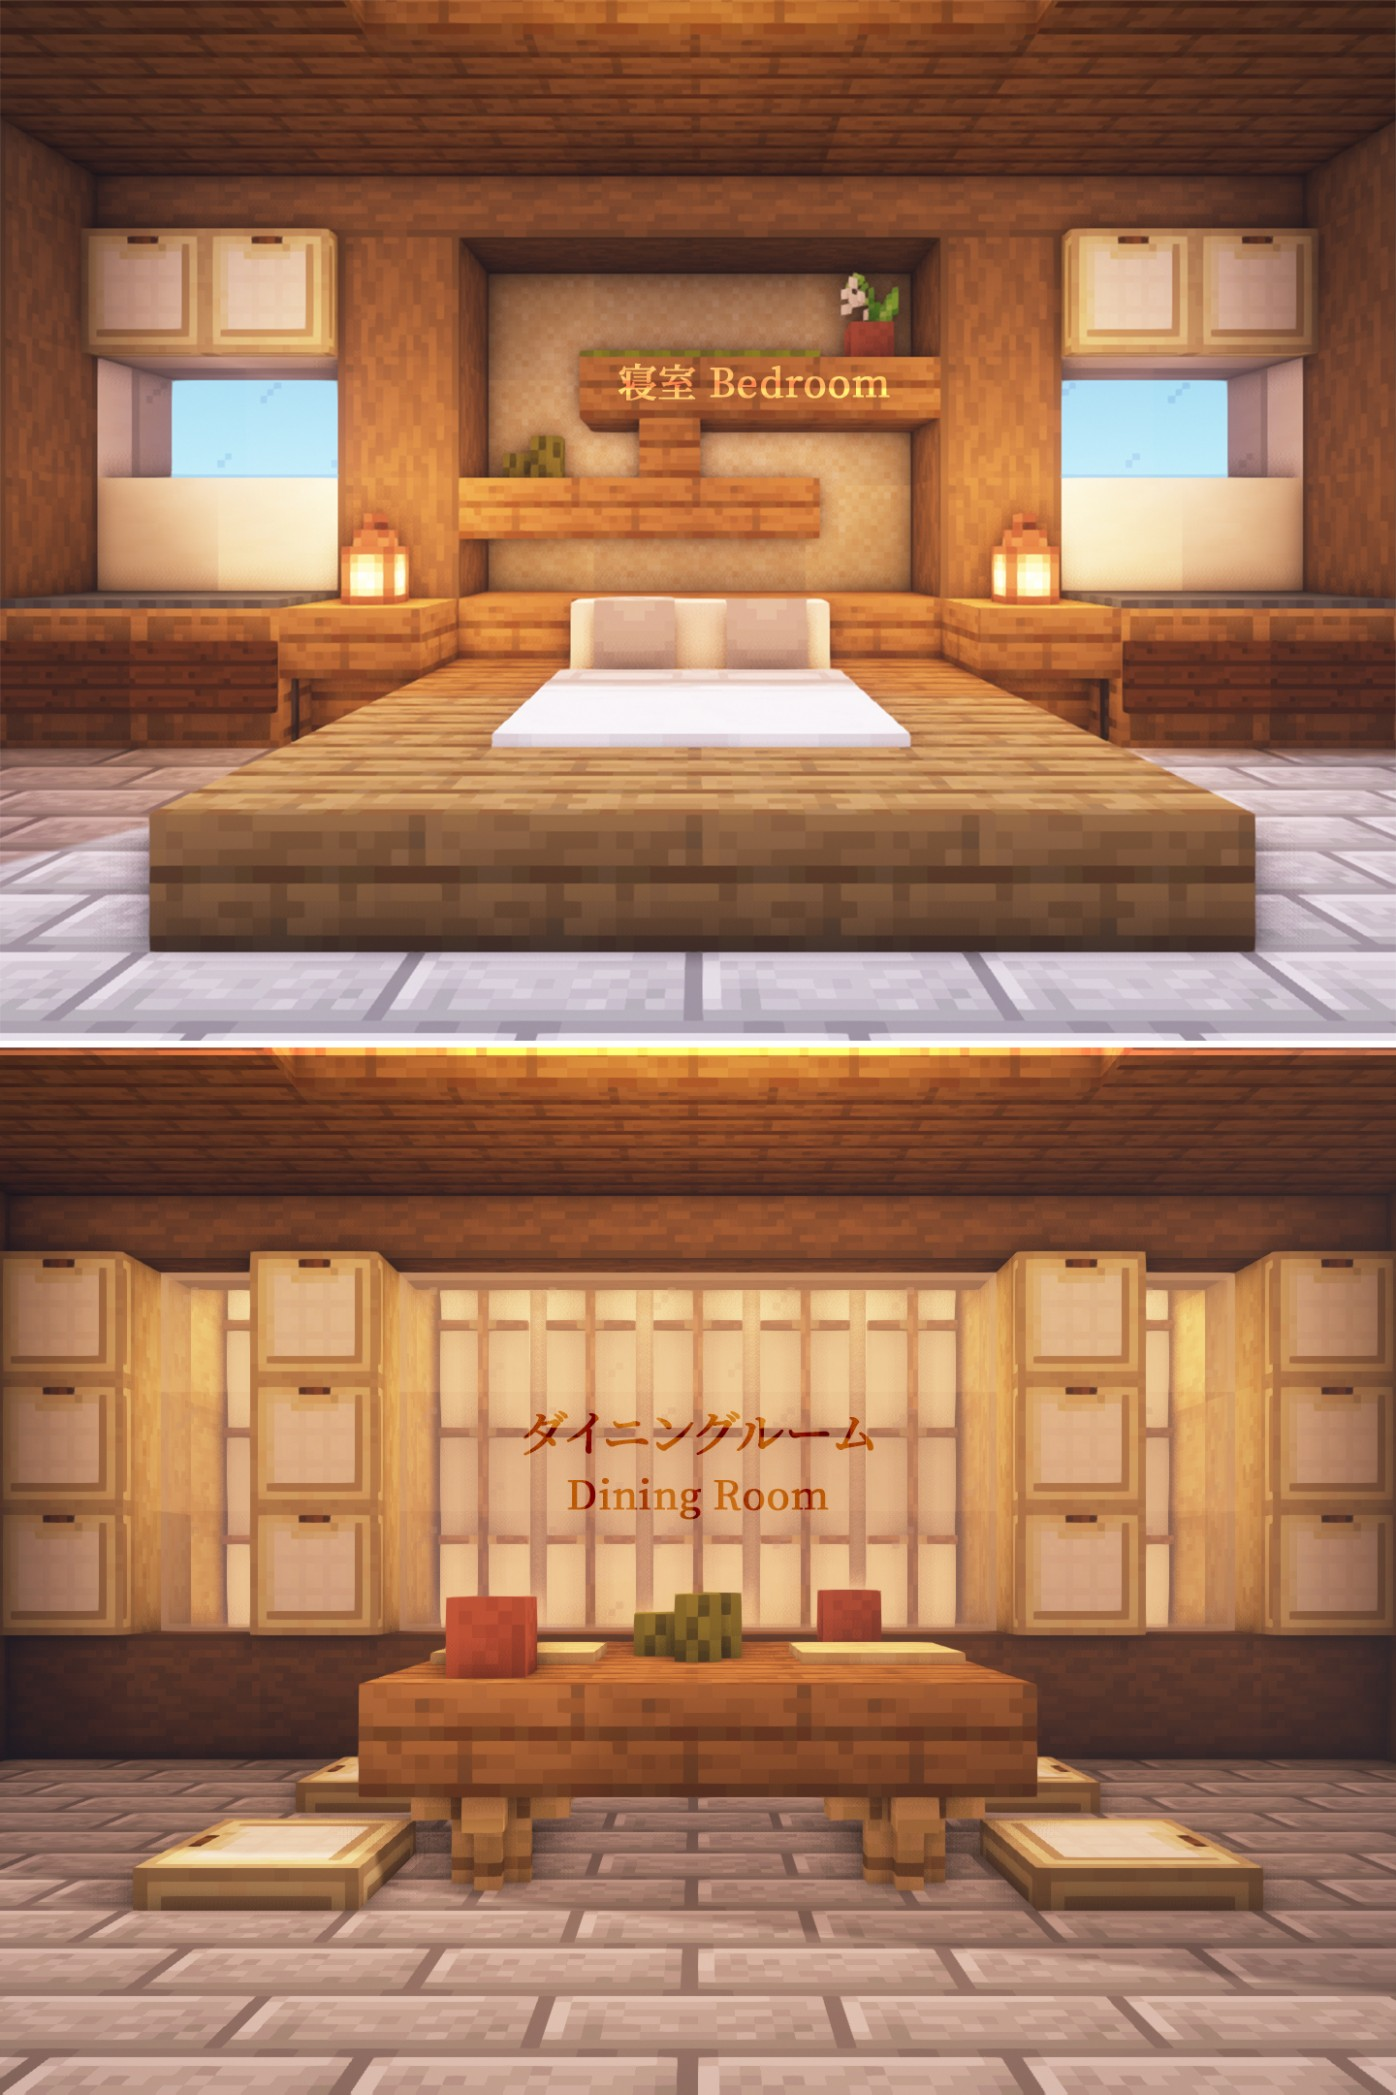 Minecraft Bedroom Furniture Ideas In Real Life Design Themed Wall  - Bedroom Ideas Minecraft